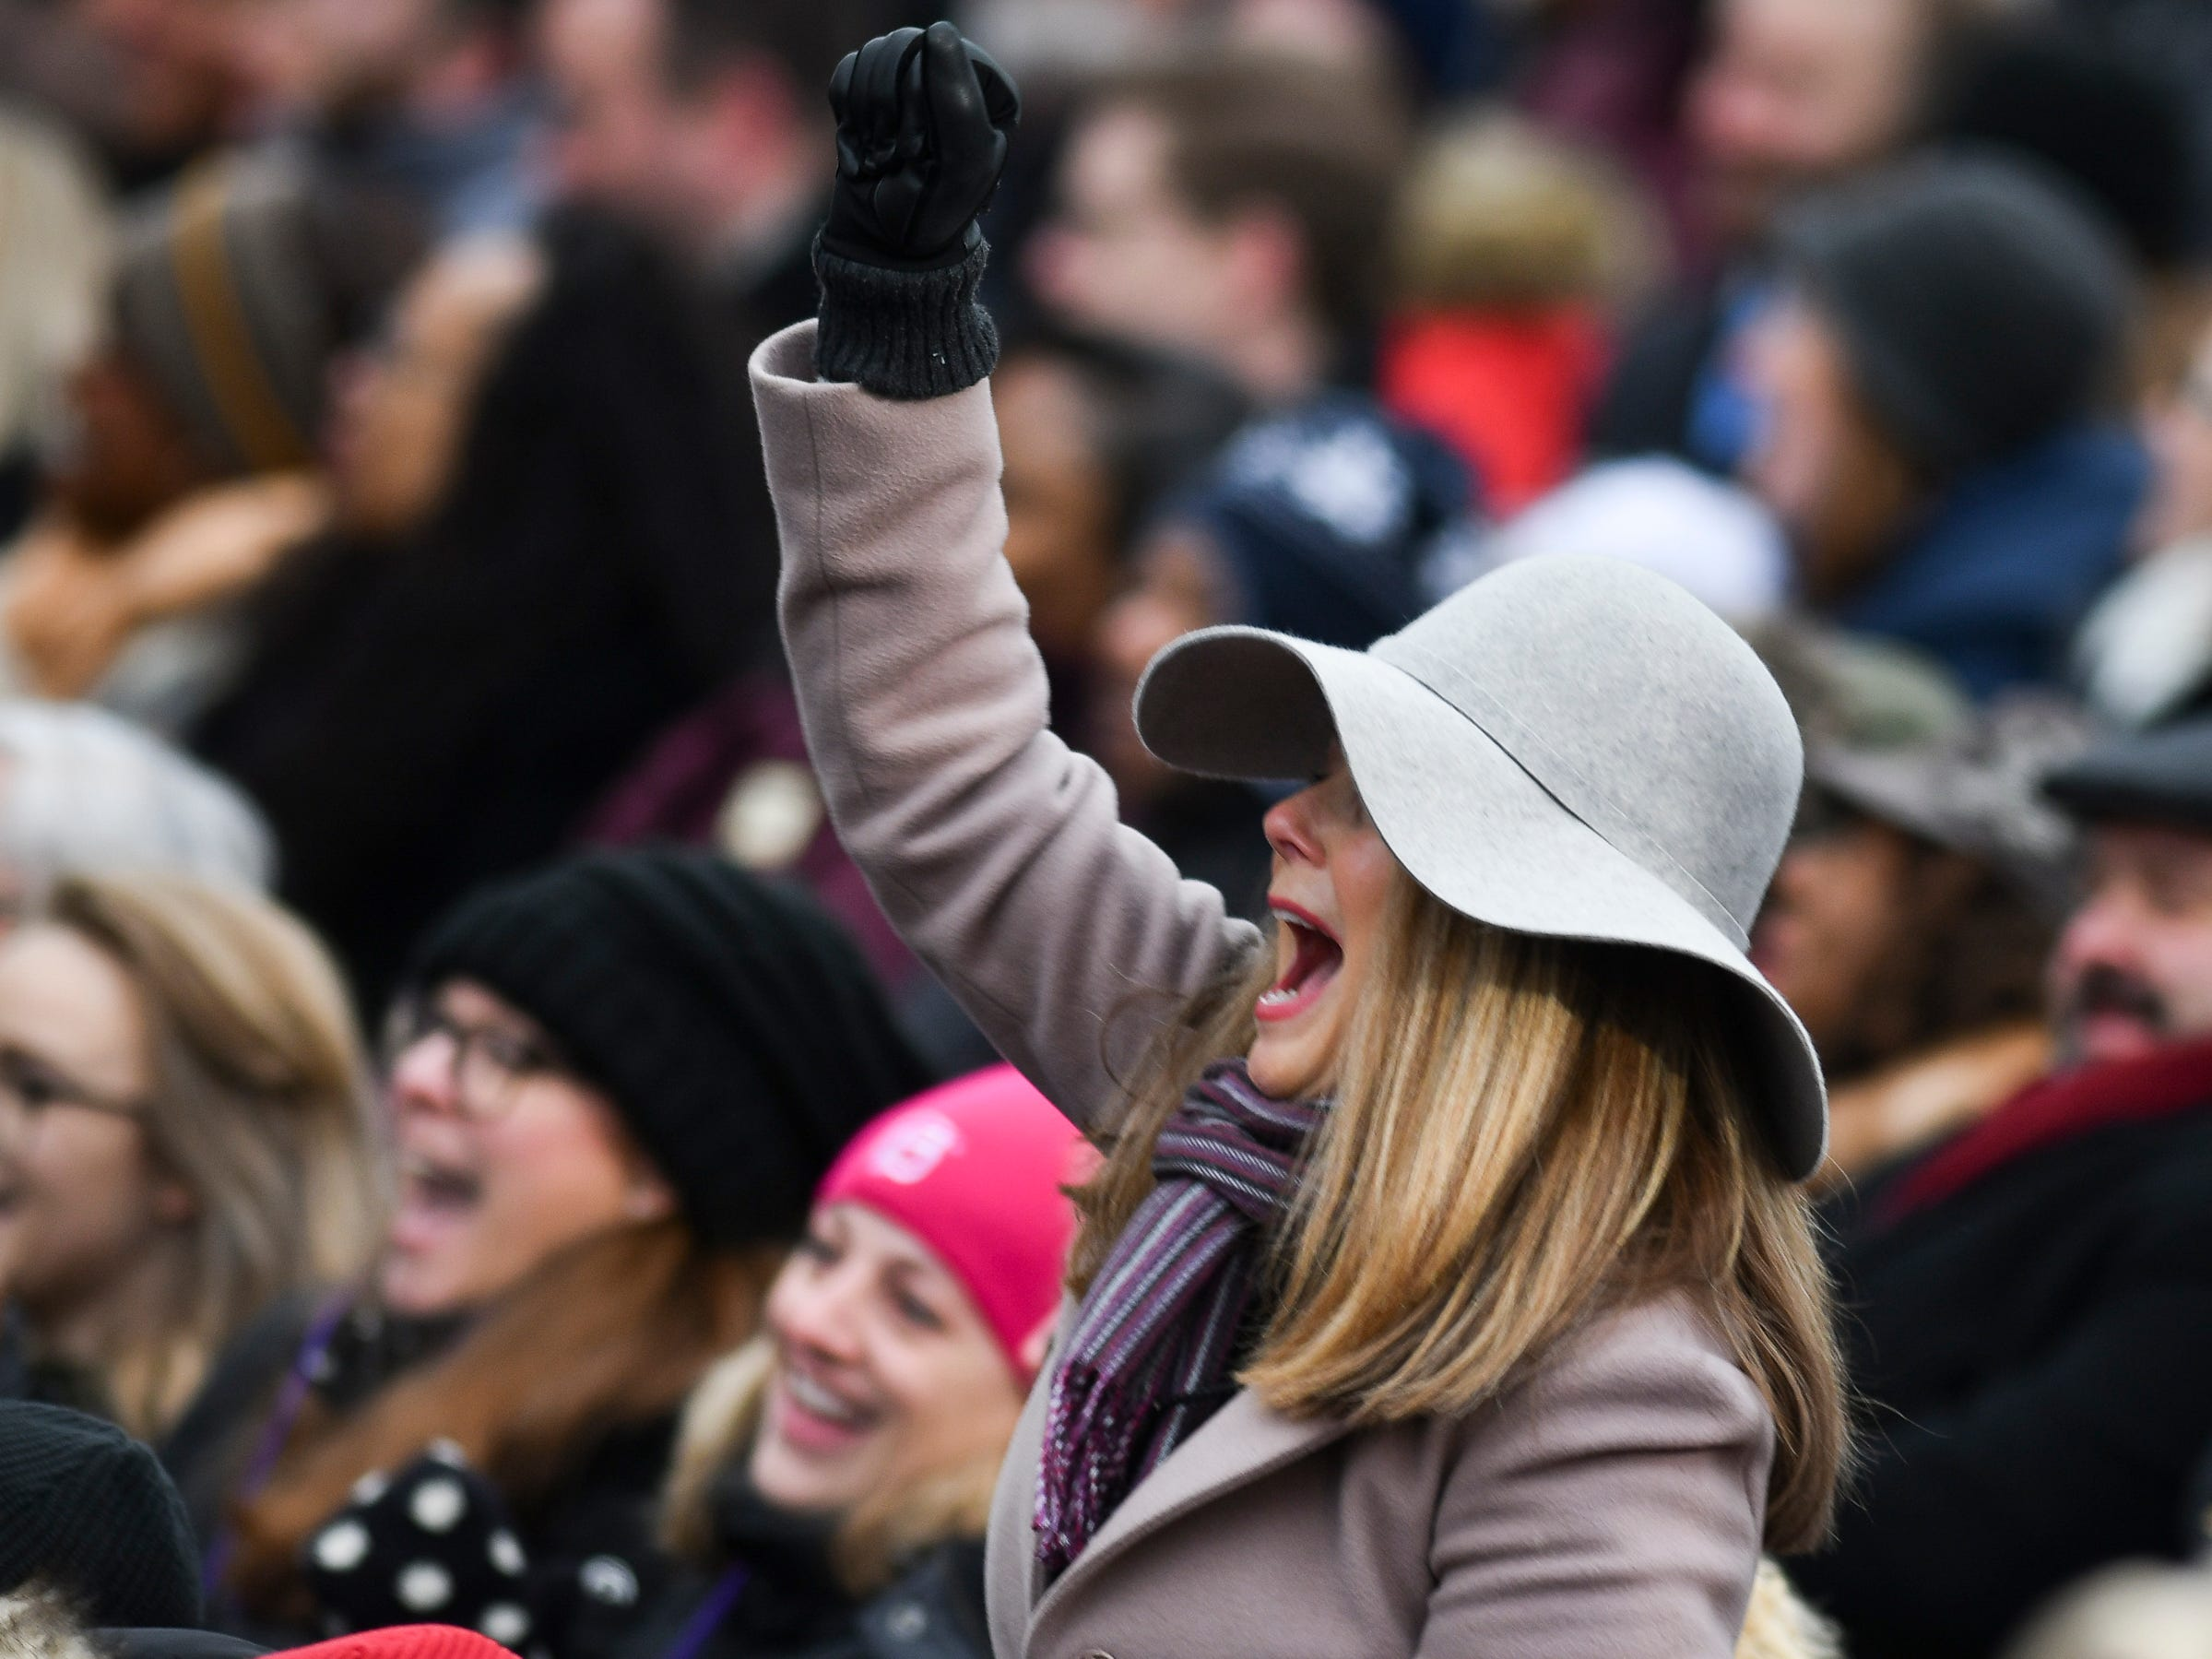 A woman cheers as Michigan Governor Gretchen Whitmer thanks her supporters for their help, Tuesday, Jan. 1, 2019, at the State Capitol during the inaugural ceremony.